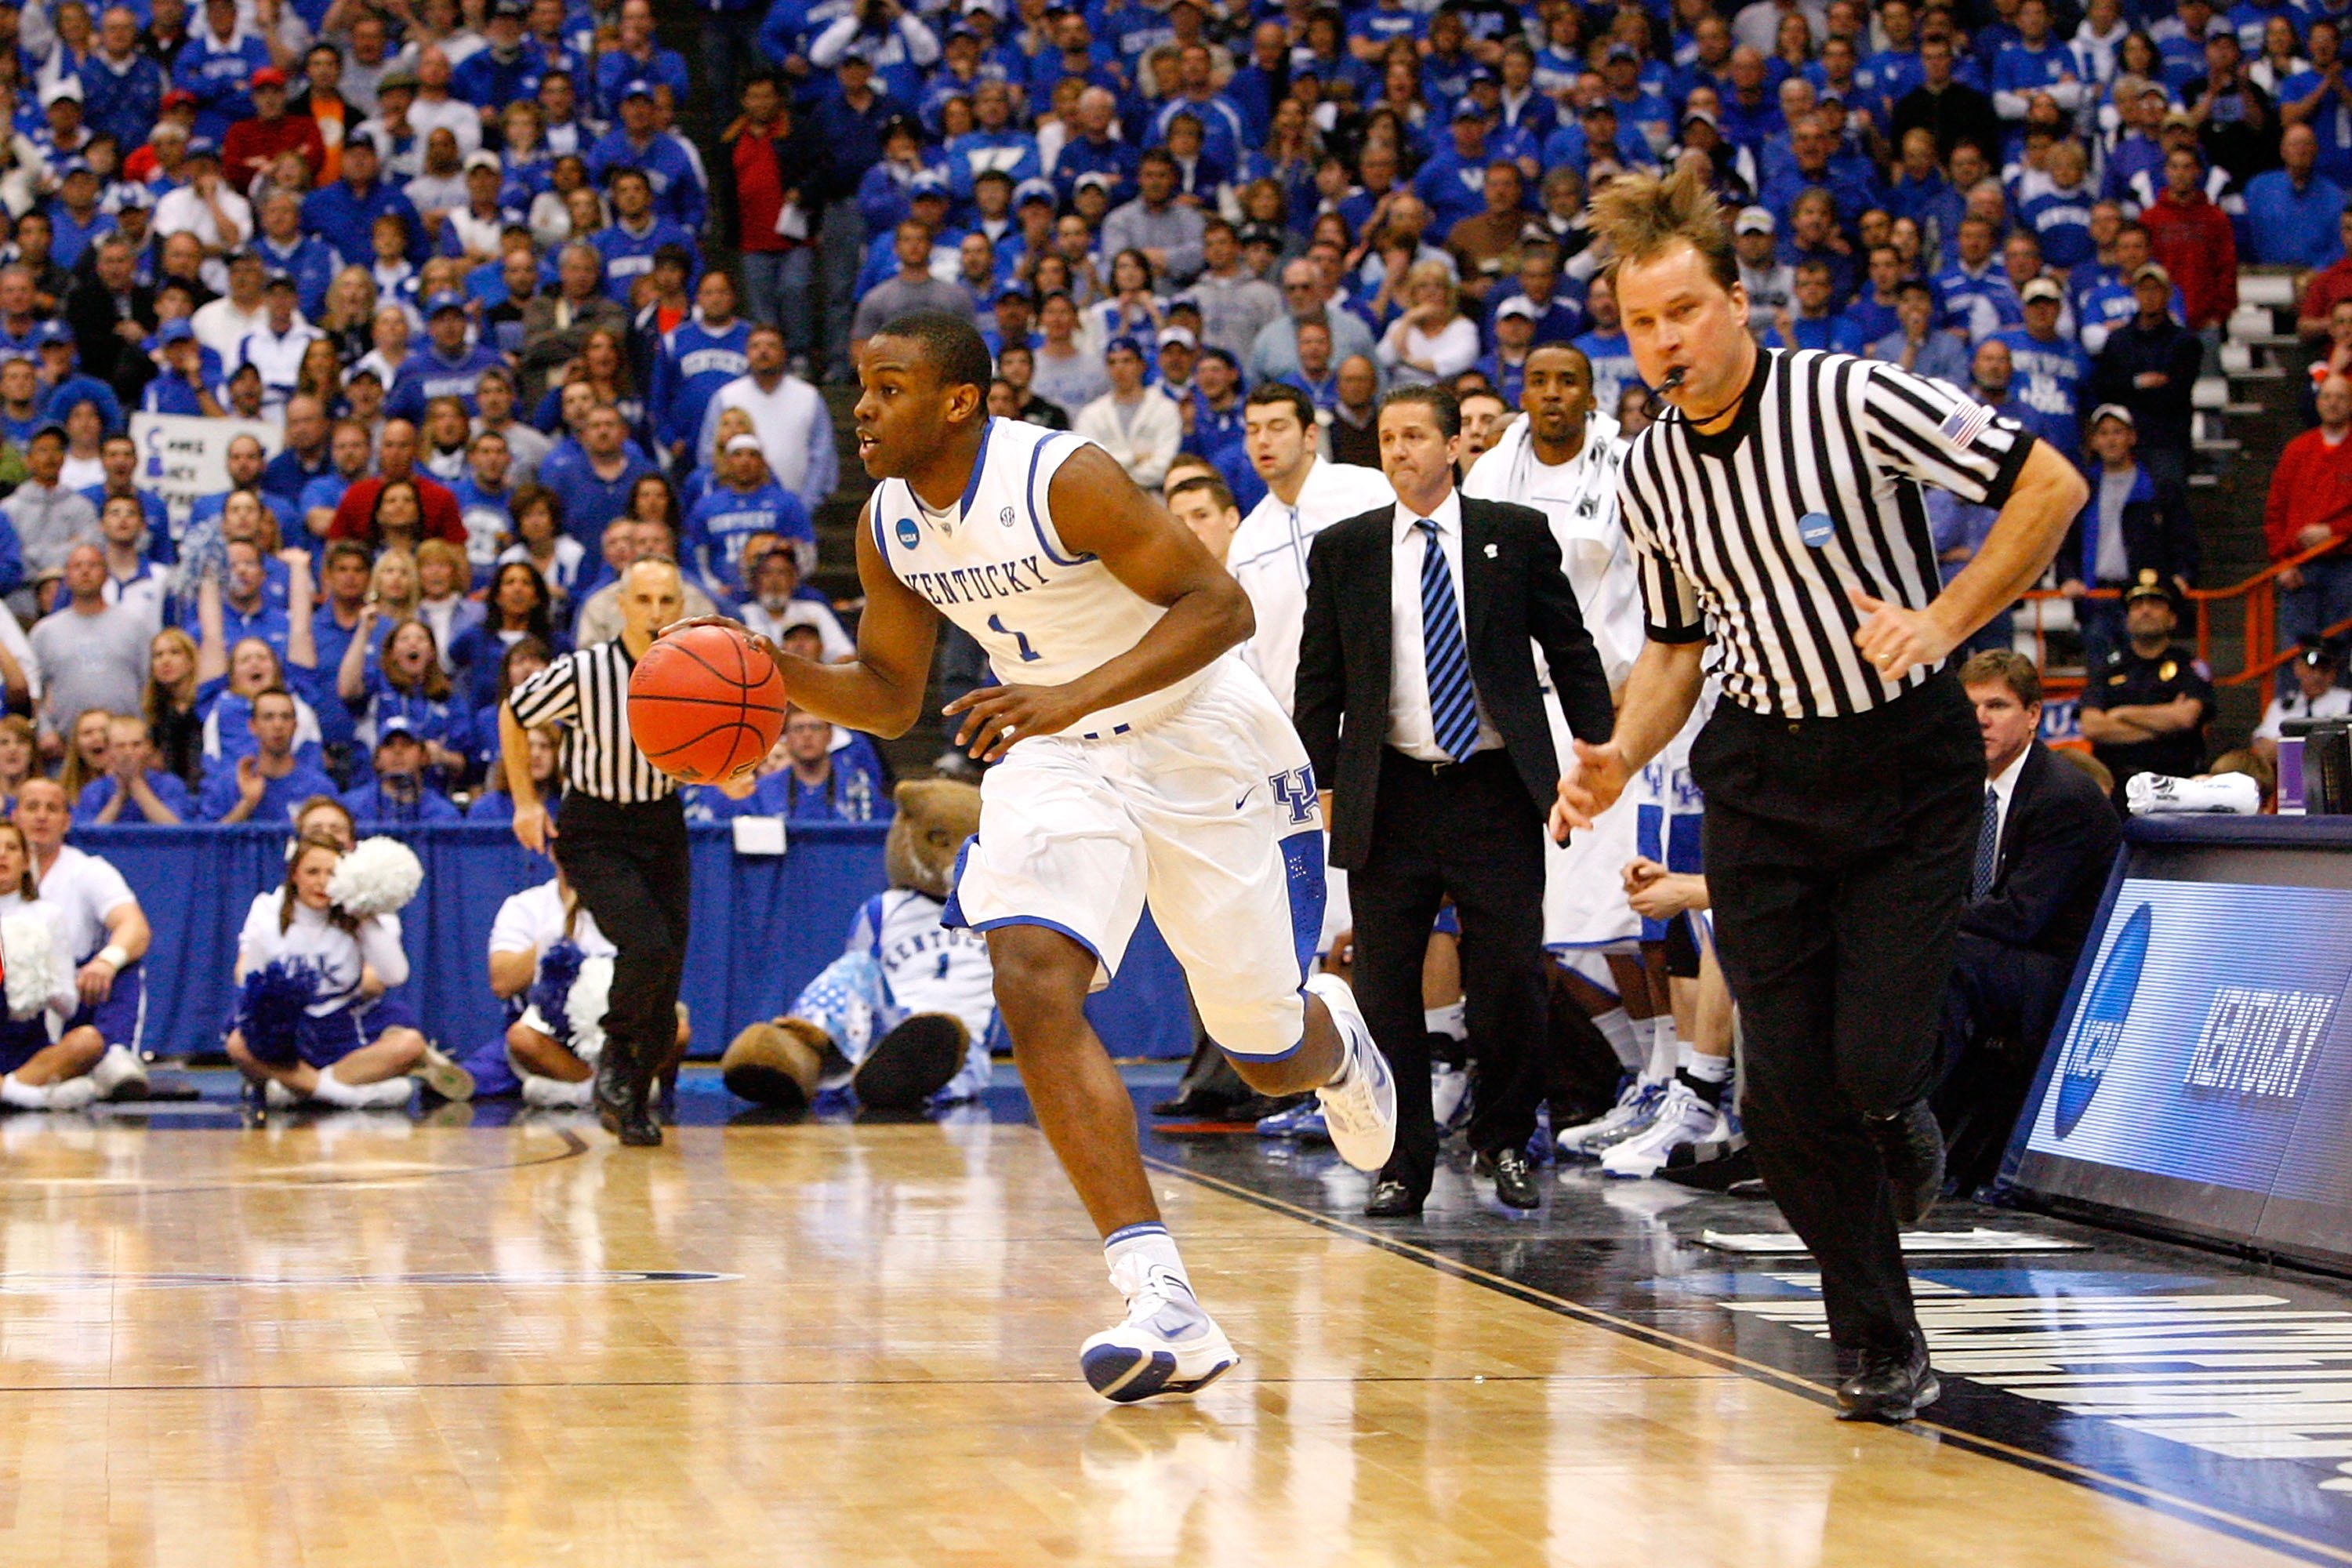 SYRACUSE, NY - MARCH 25:  Darius Miller #1 of the Kentucky Wildcats brings the ball up court against the Cornell Big Red during the east regional semifinal of the 2010 NCAA men's basketball tournament at the Carrier Dome on March 25, 2010 in Syracuse, New